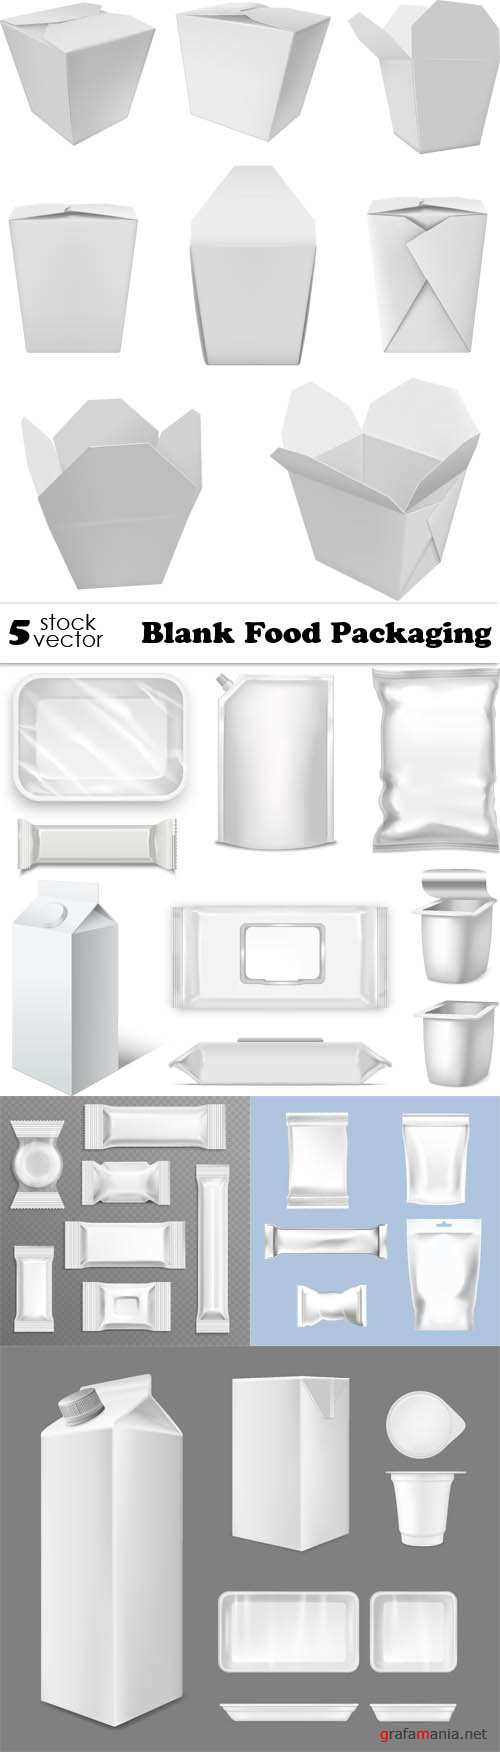 Vectors - Blank Food Packaging